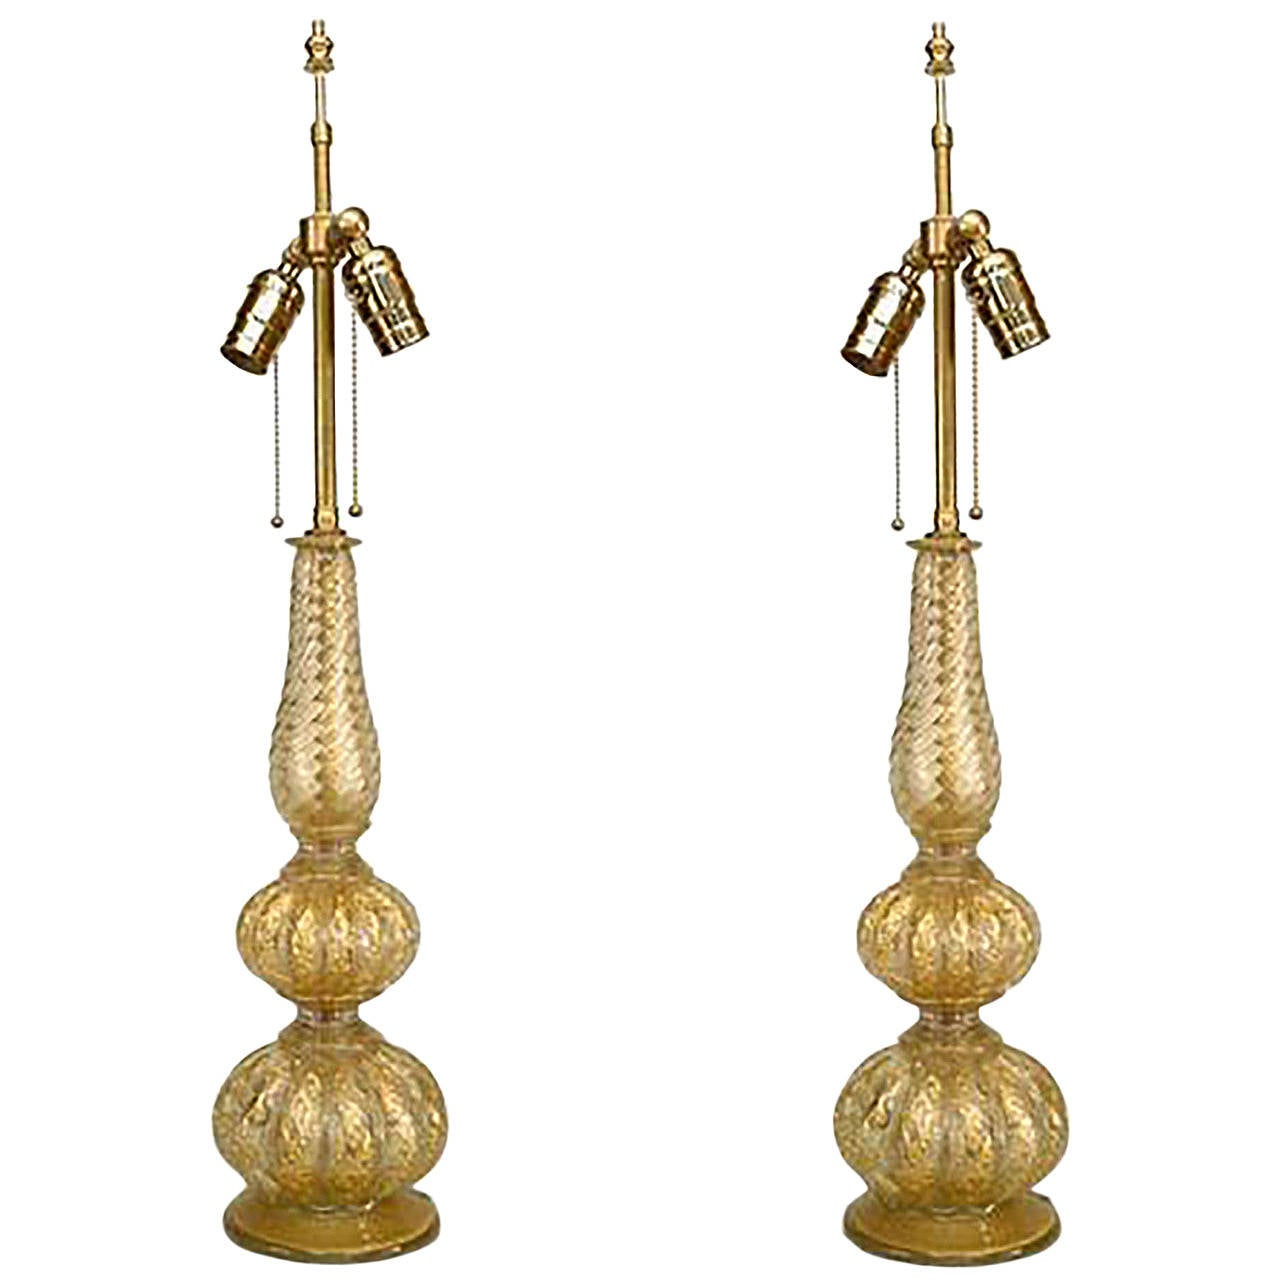 Pair of 1940's Italian Gold Dusted Murano Glass Table Lamps